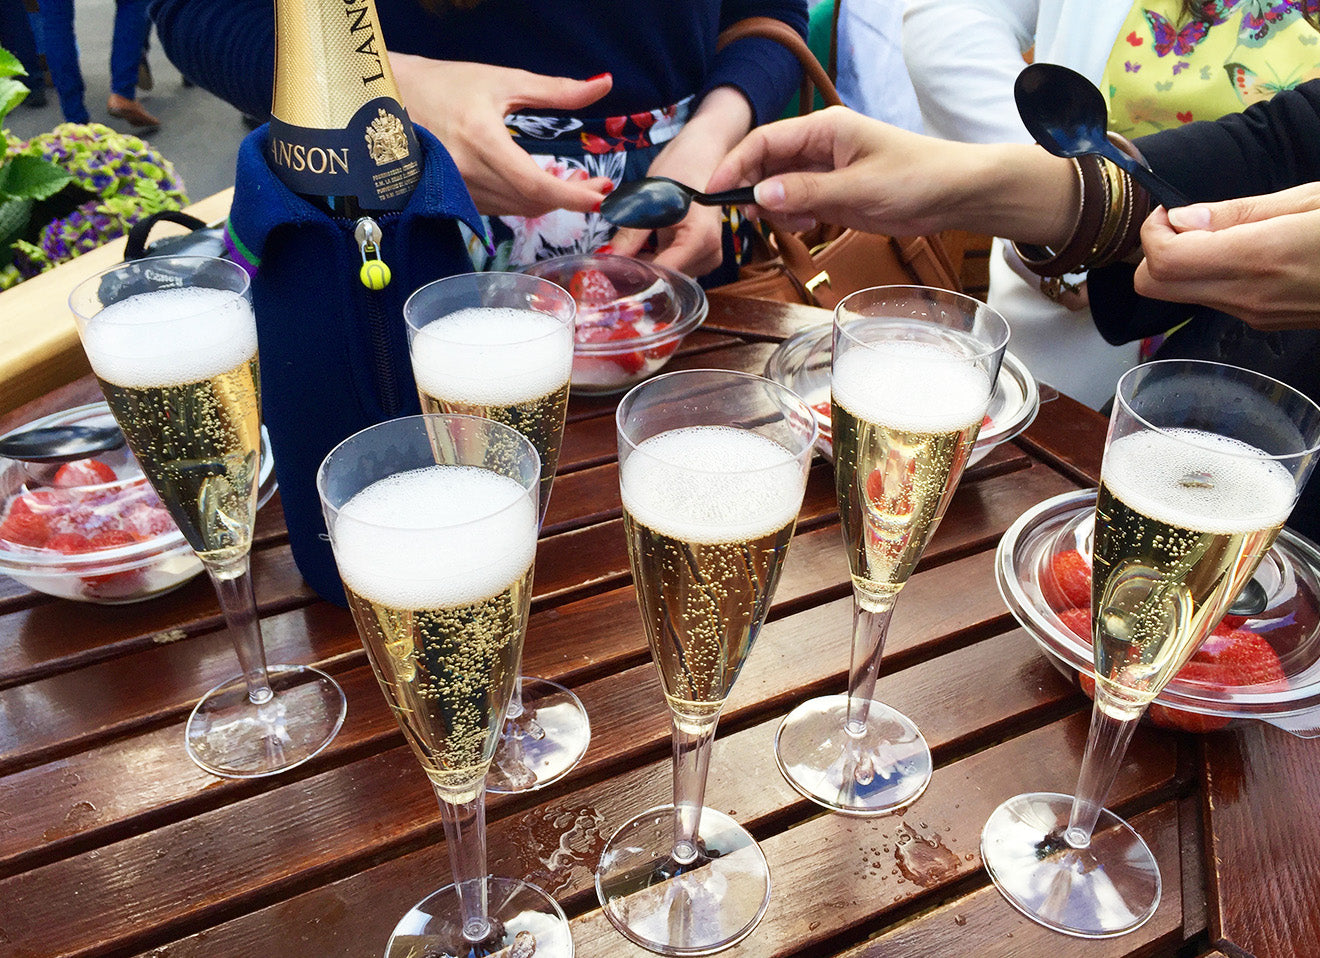 Lanson Champagne official supplier of Wimbledon